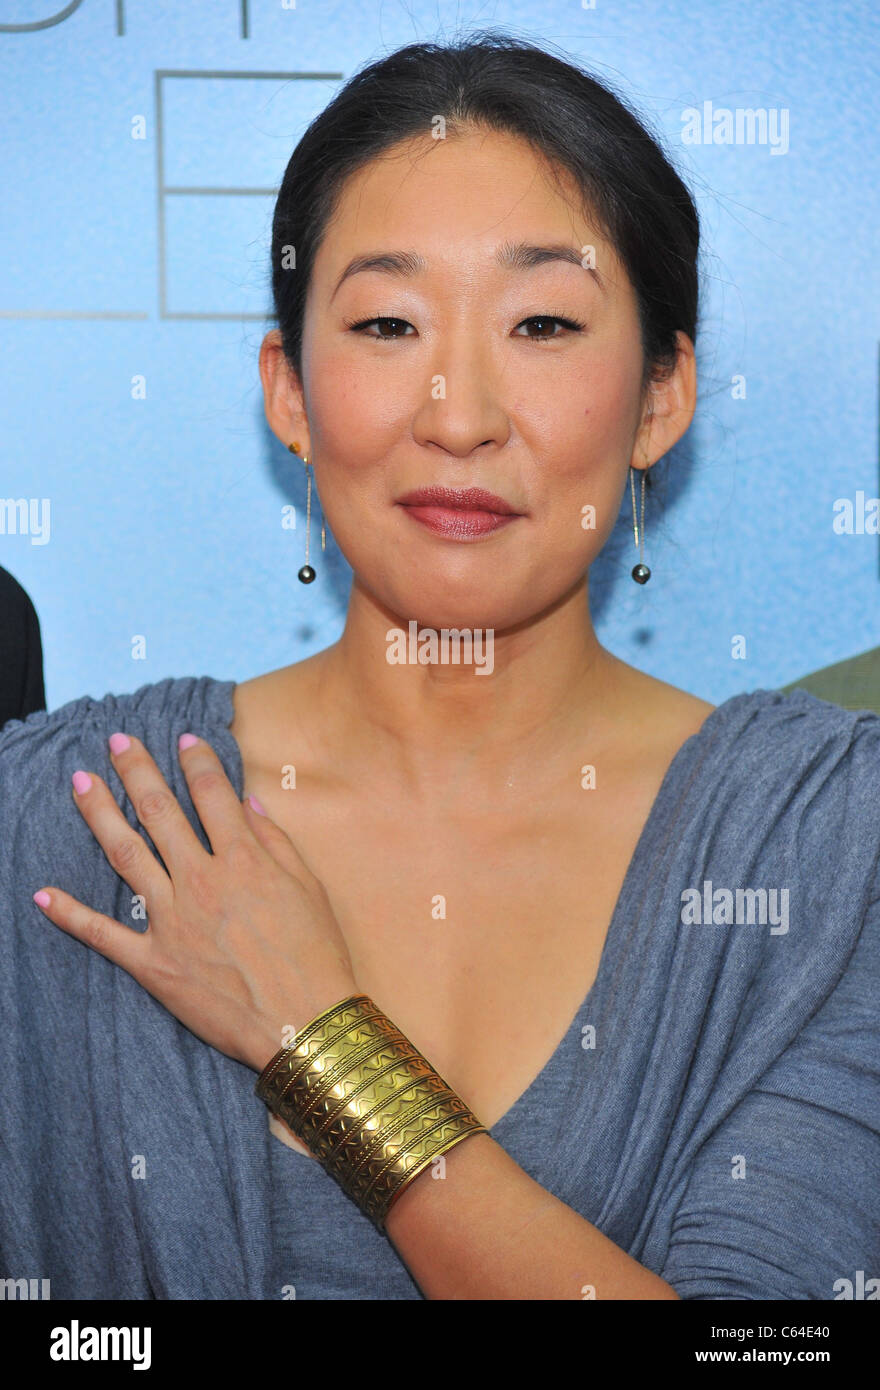 Sandra Oh at arrivals for RABBIT HOLE Premiere, The Paris Theatre, New York, NY December 2, 2010. Photo By: Gregorio - Stock Image